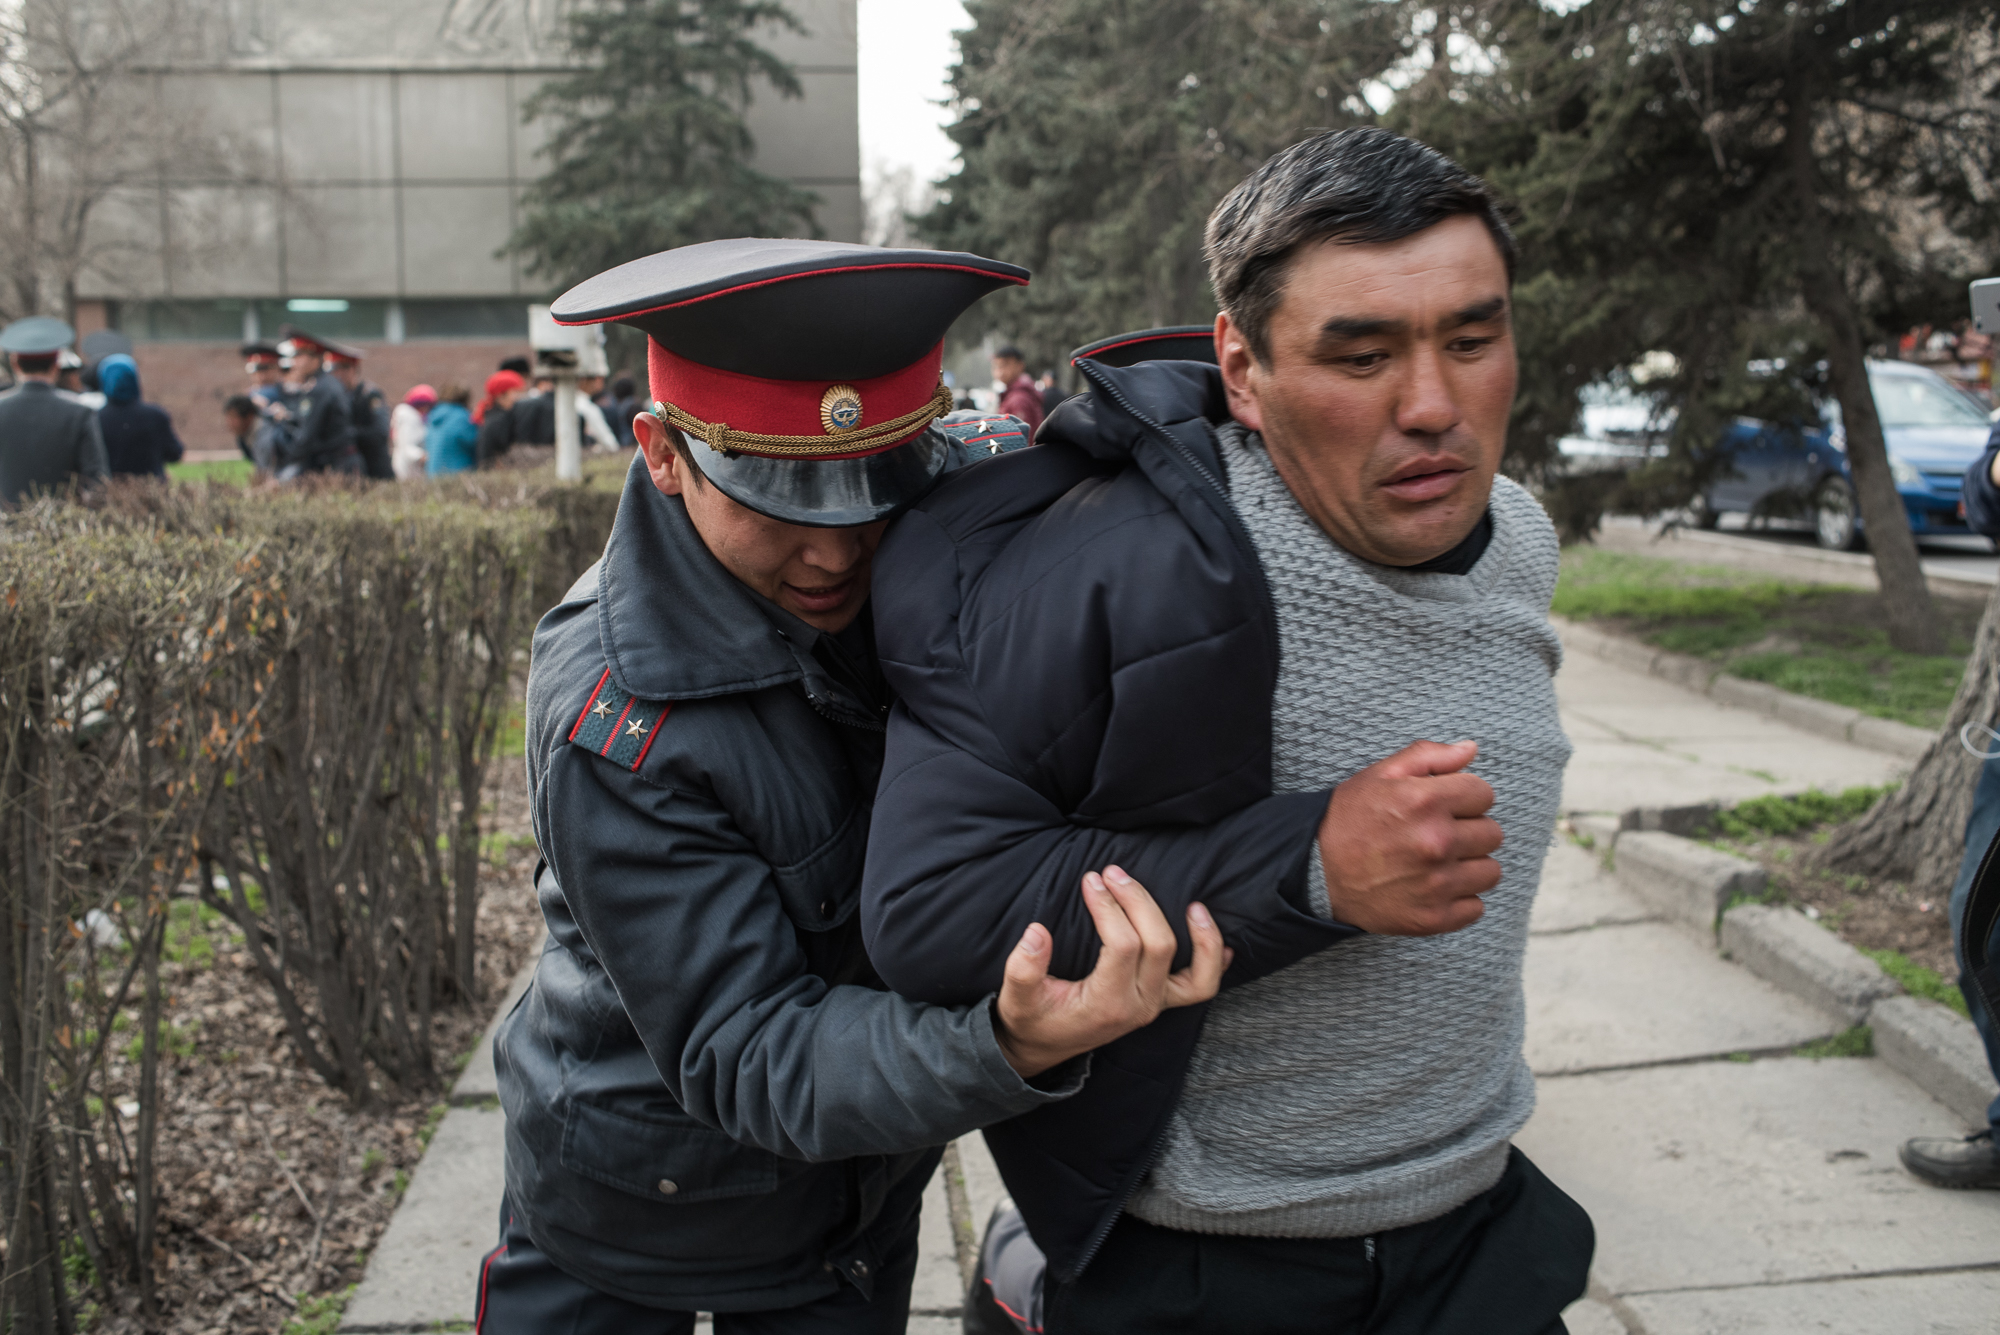 Kyrgyzstan: Clashes Break Out as Returning Exiled Politician Detained